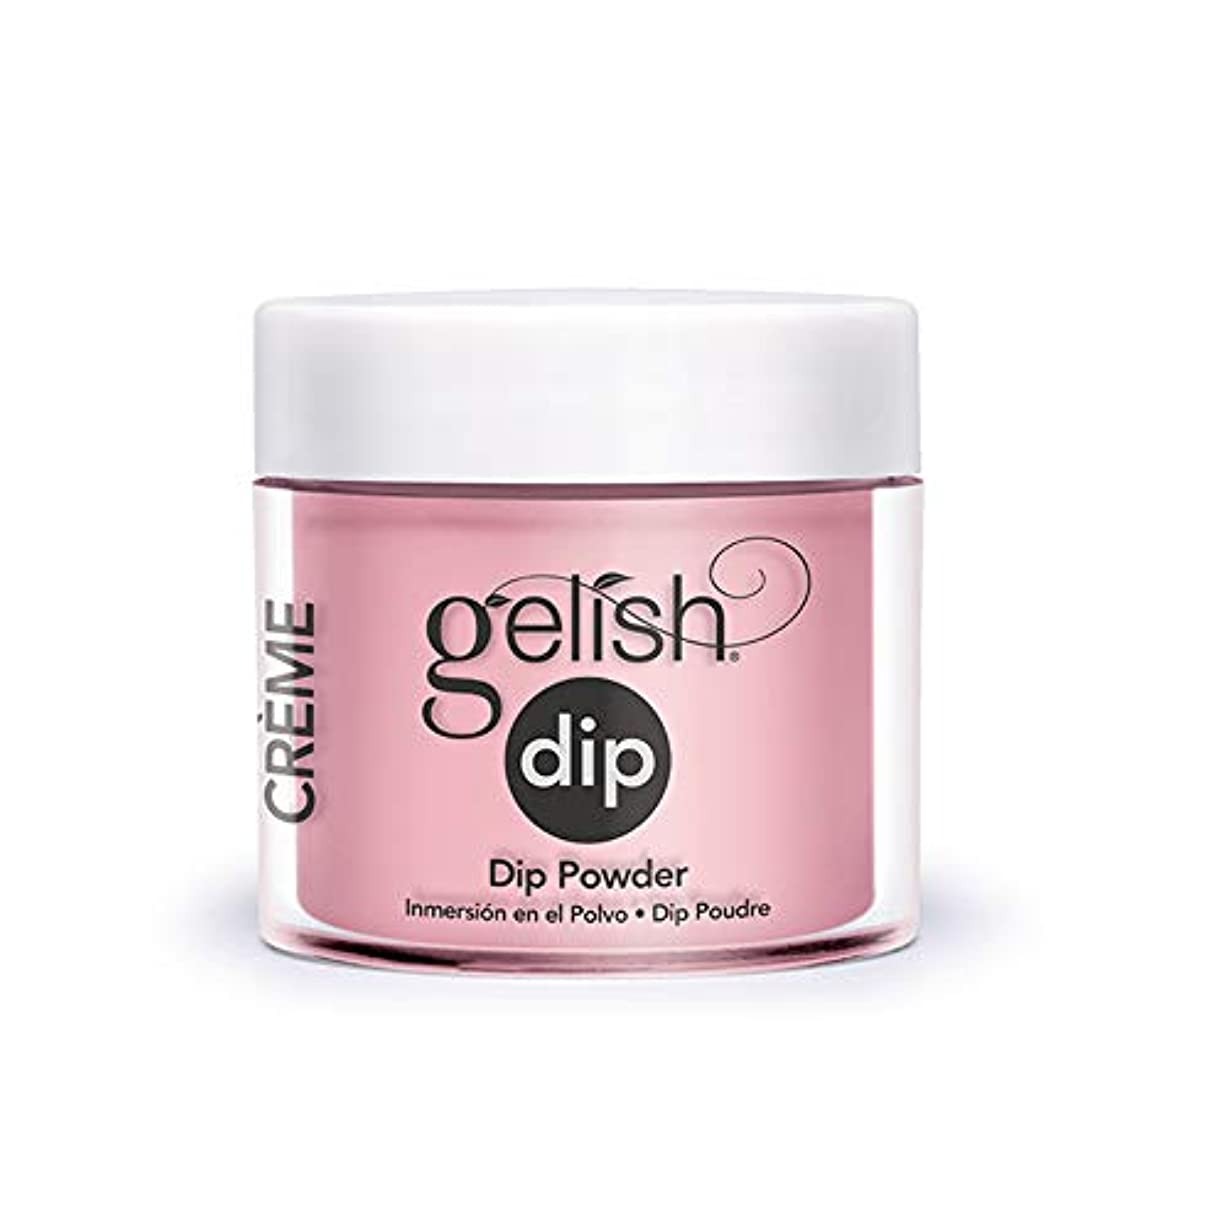 Harmony Gelish - Acrylic Dip Powder - Pink Smoothie - 23g / 0.8oz